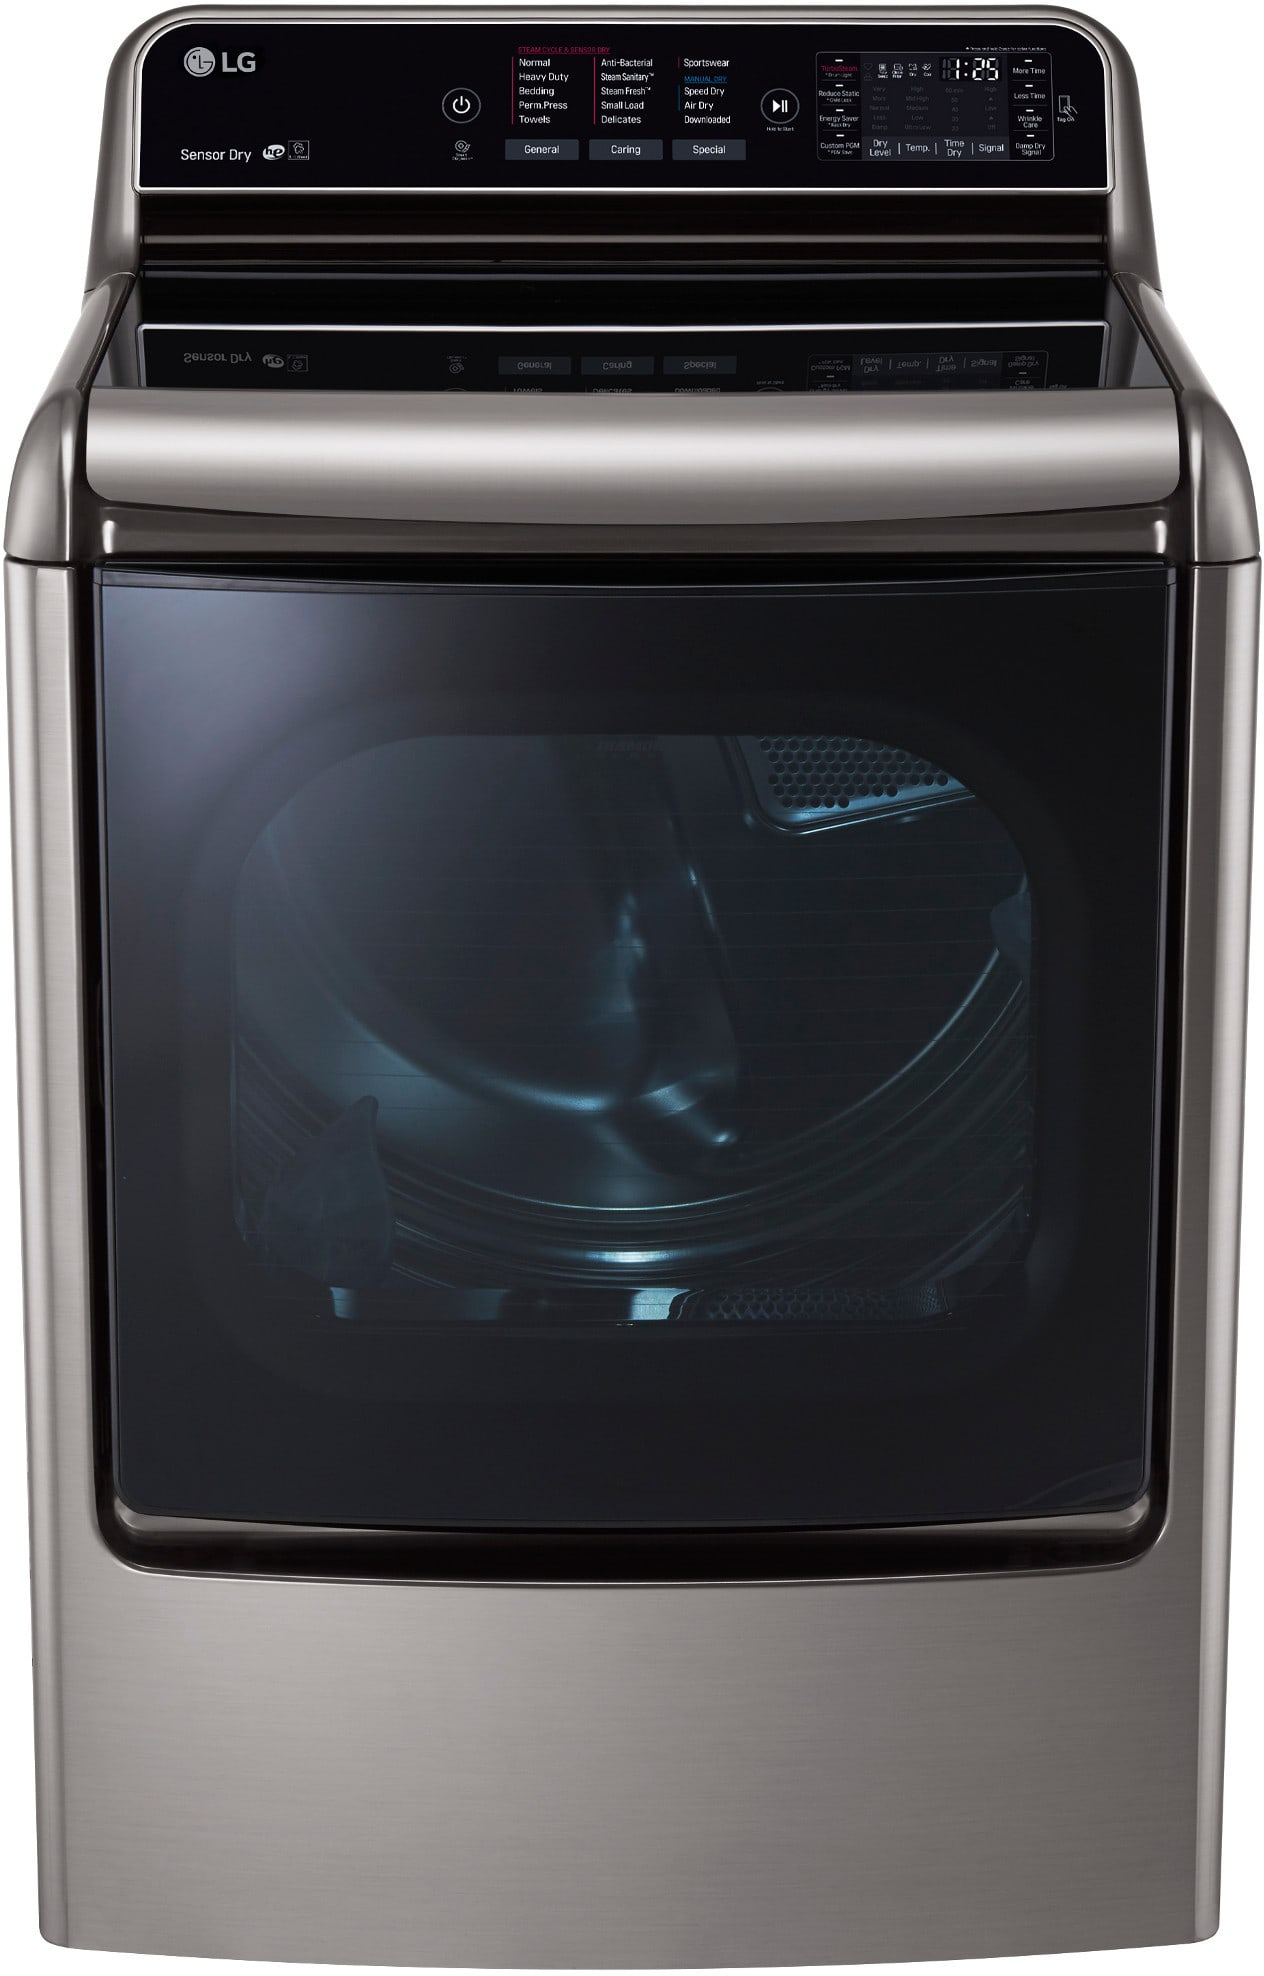 Lg Wt7710hva 29 Inch Top Load Washer With 5 7 Cu Ft